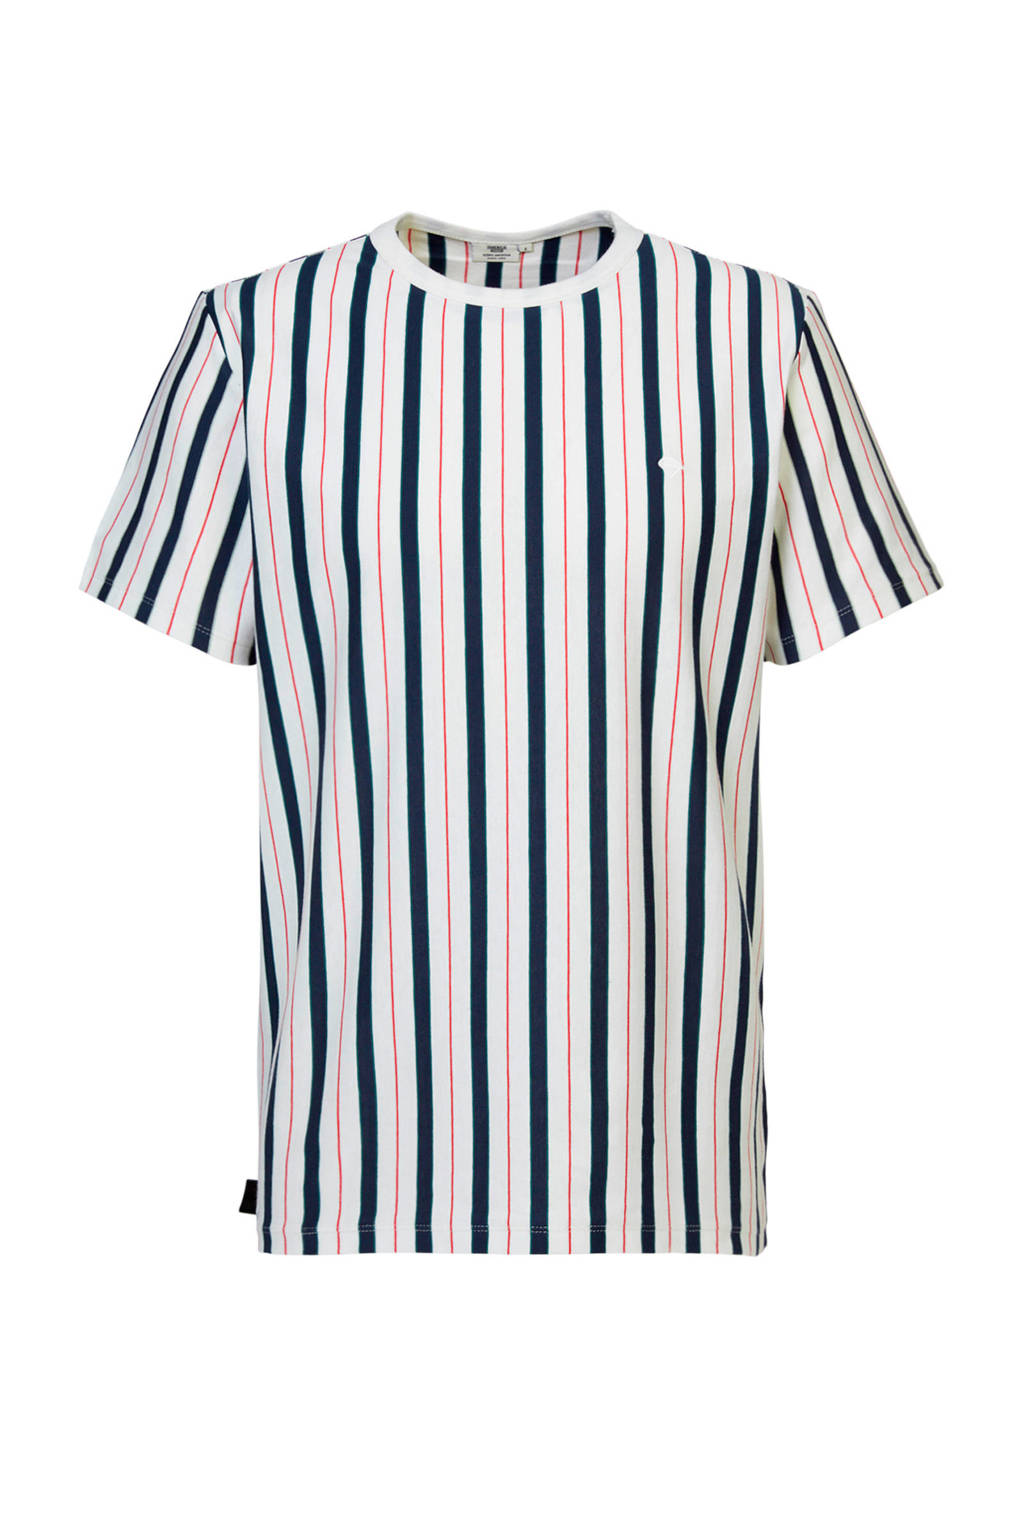 America Today gestreept T-shirt off white, Off White